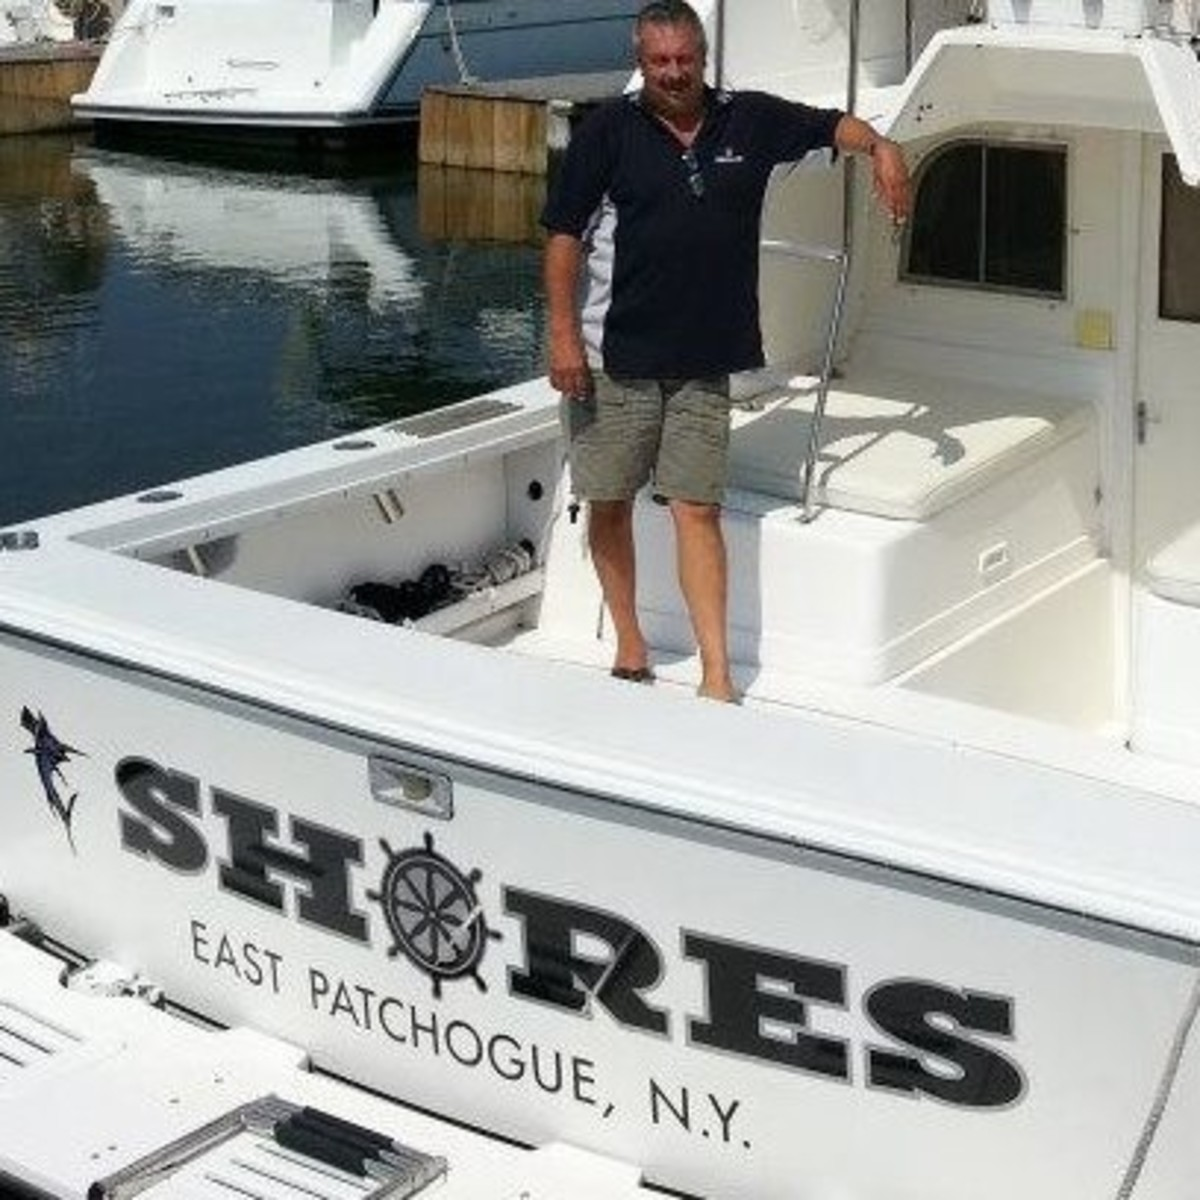 Dealer Dave Kazmark of Patchogue Shores Marina in East Patchogue, N.Y., says he is pleased with the Beneteau Group's acquisition of Rec Boat Holdings.